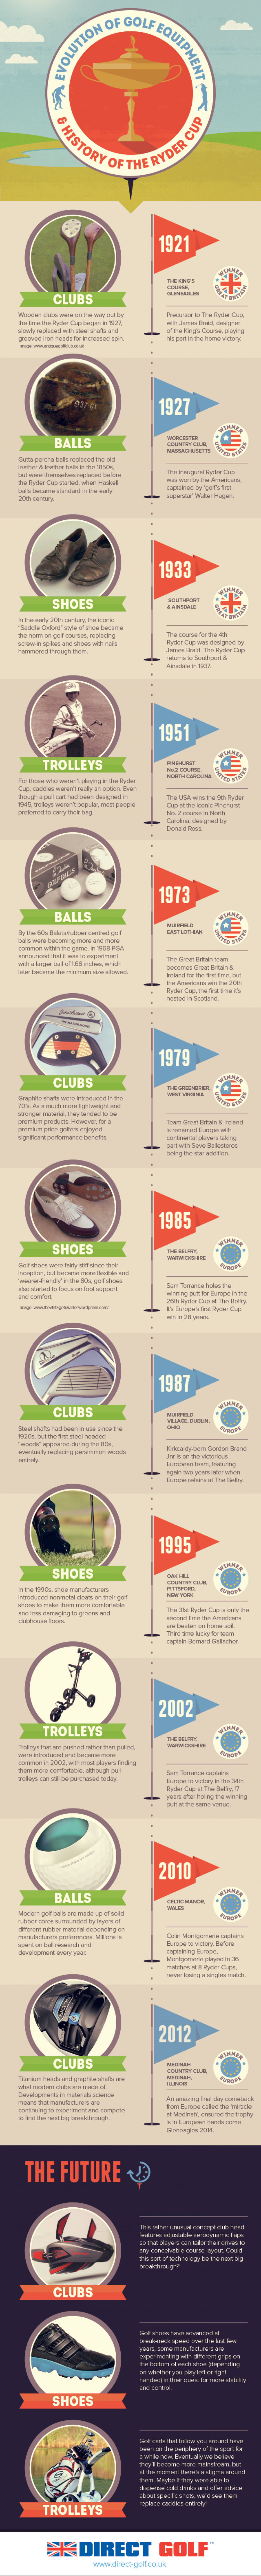 Evolution of Golf Equipment Infographic